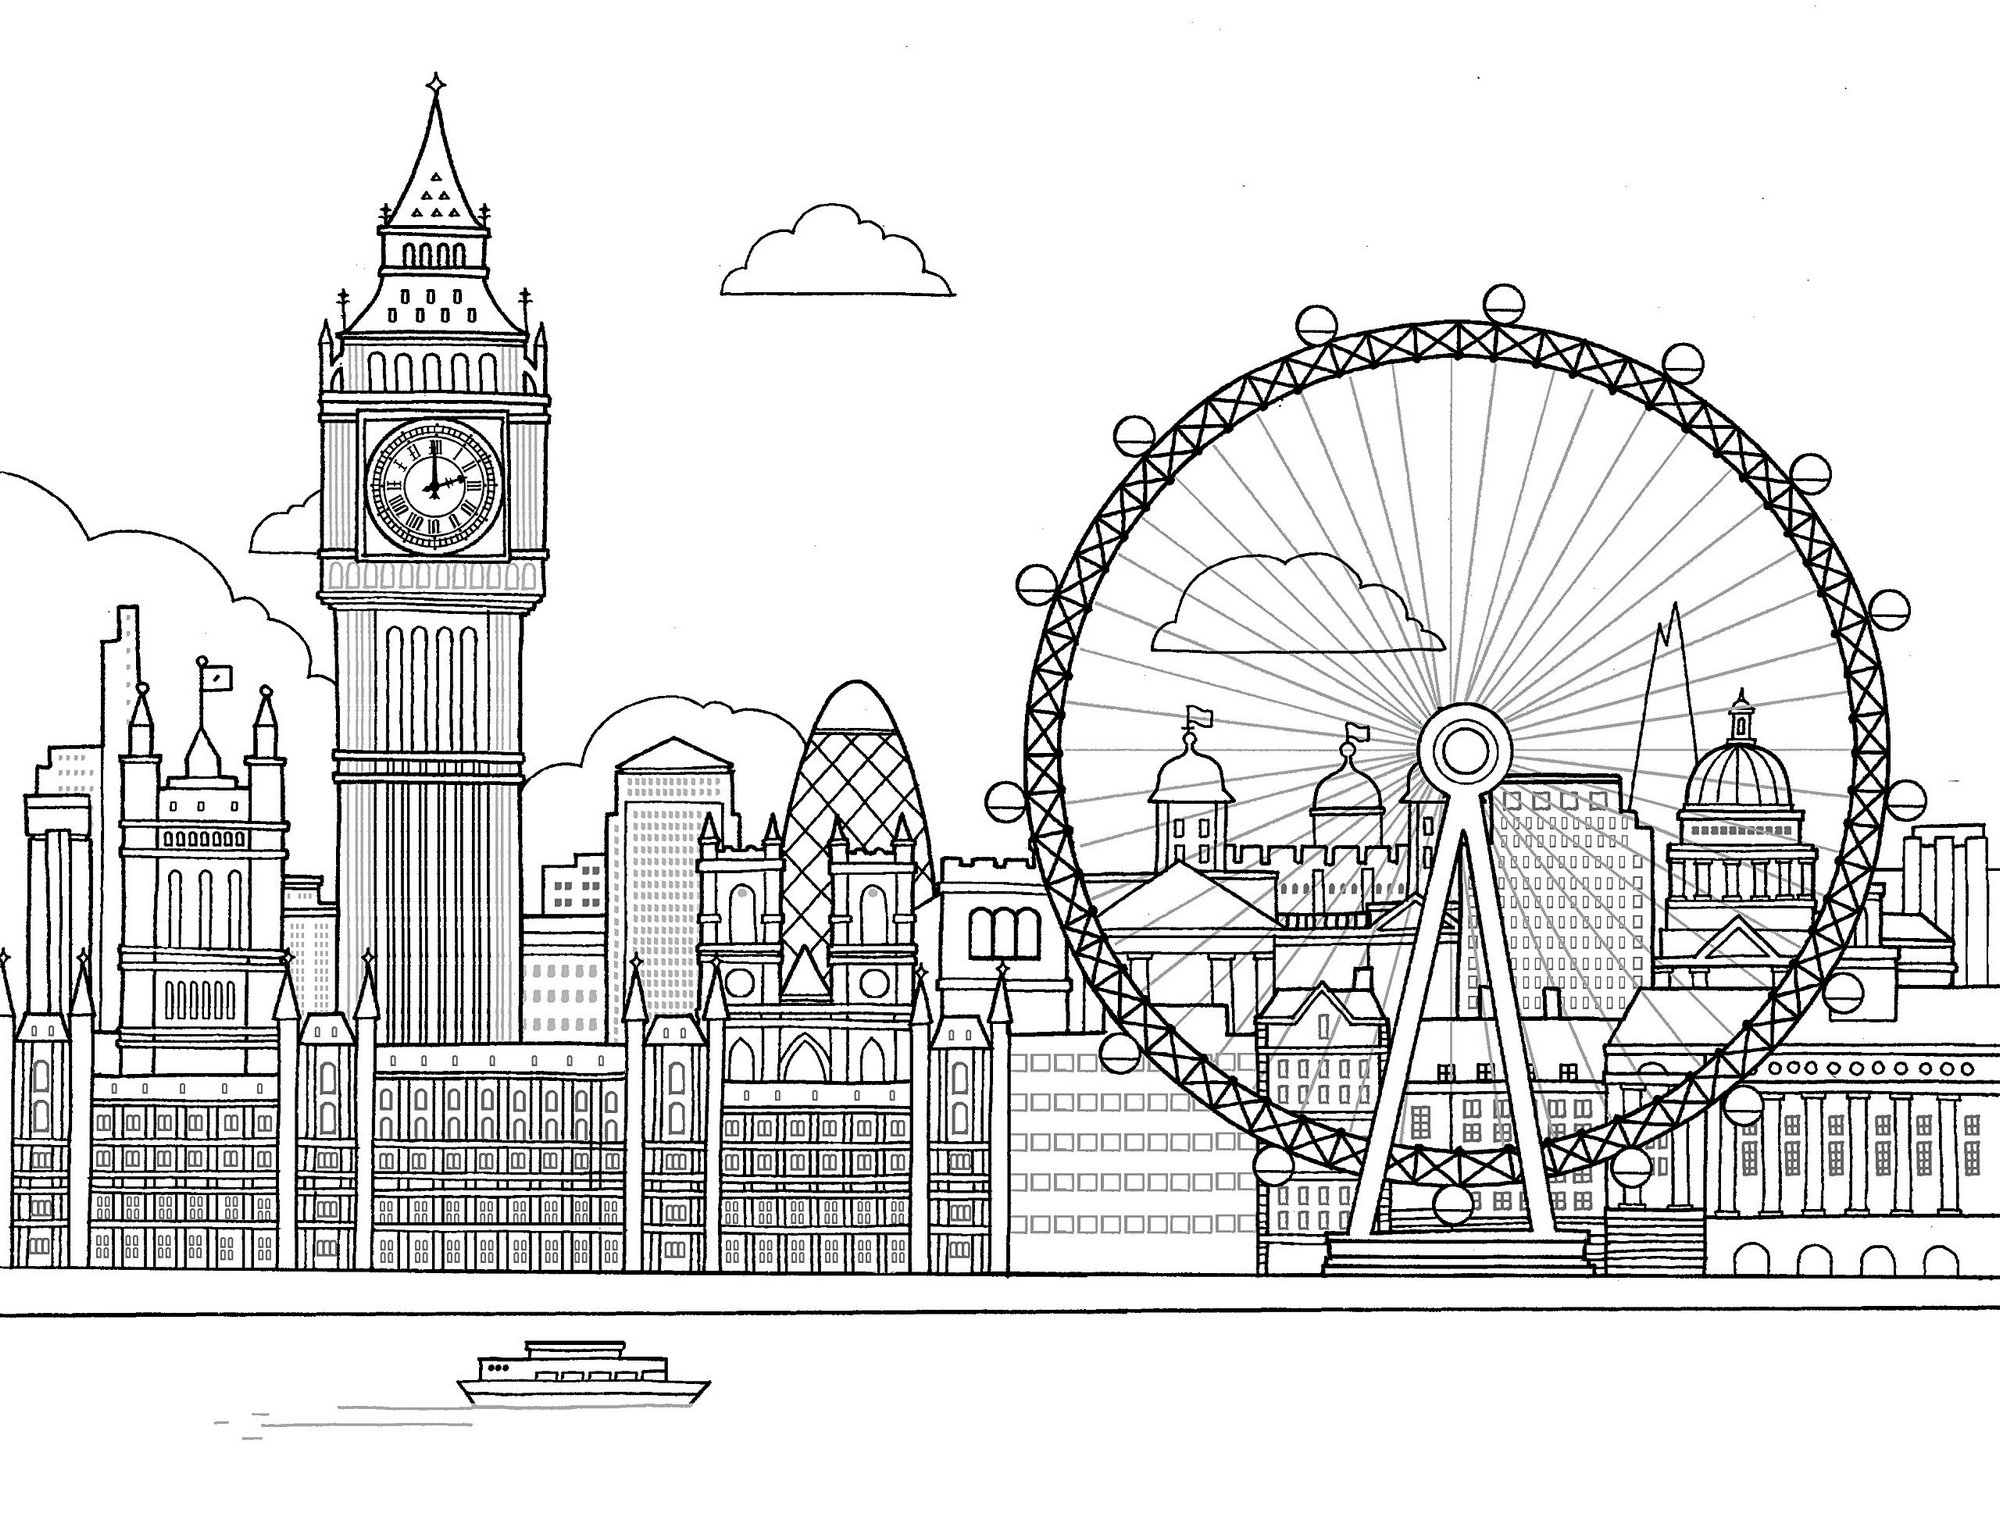 The London Eye Coloring Page